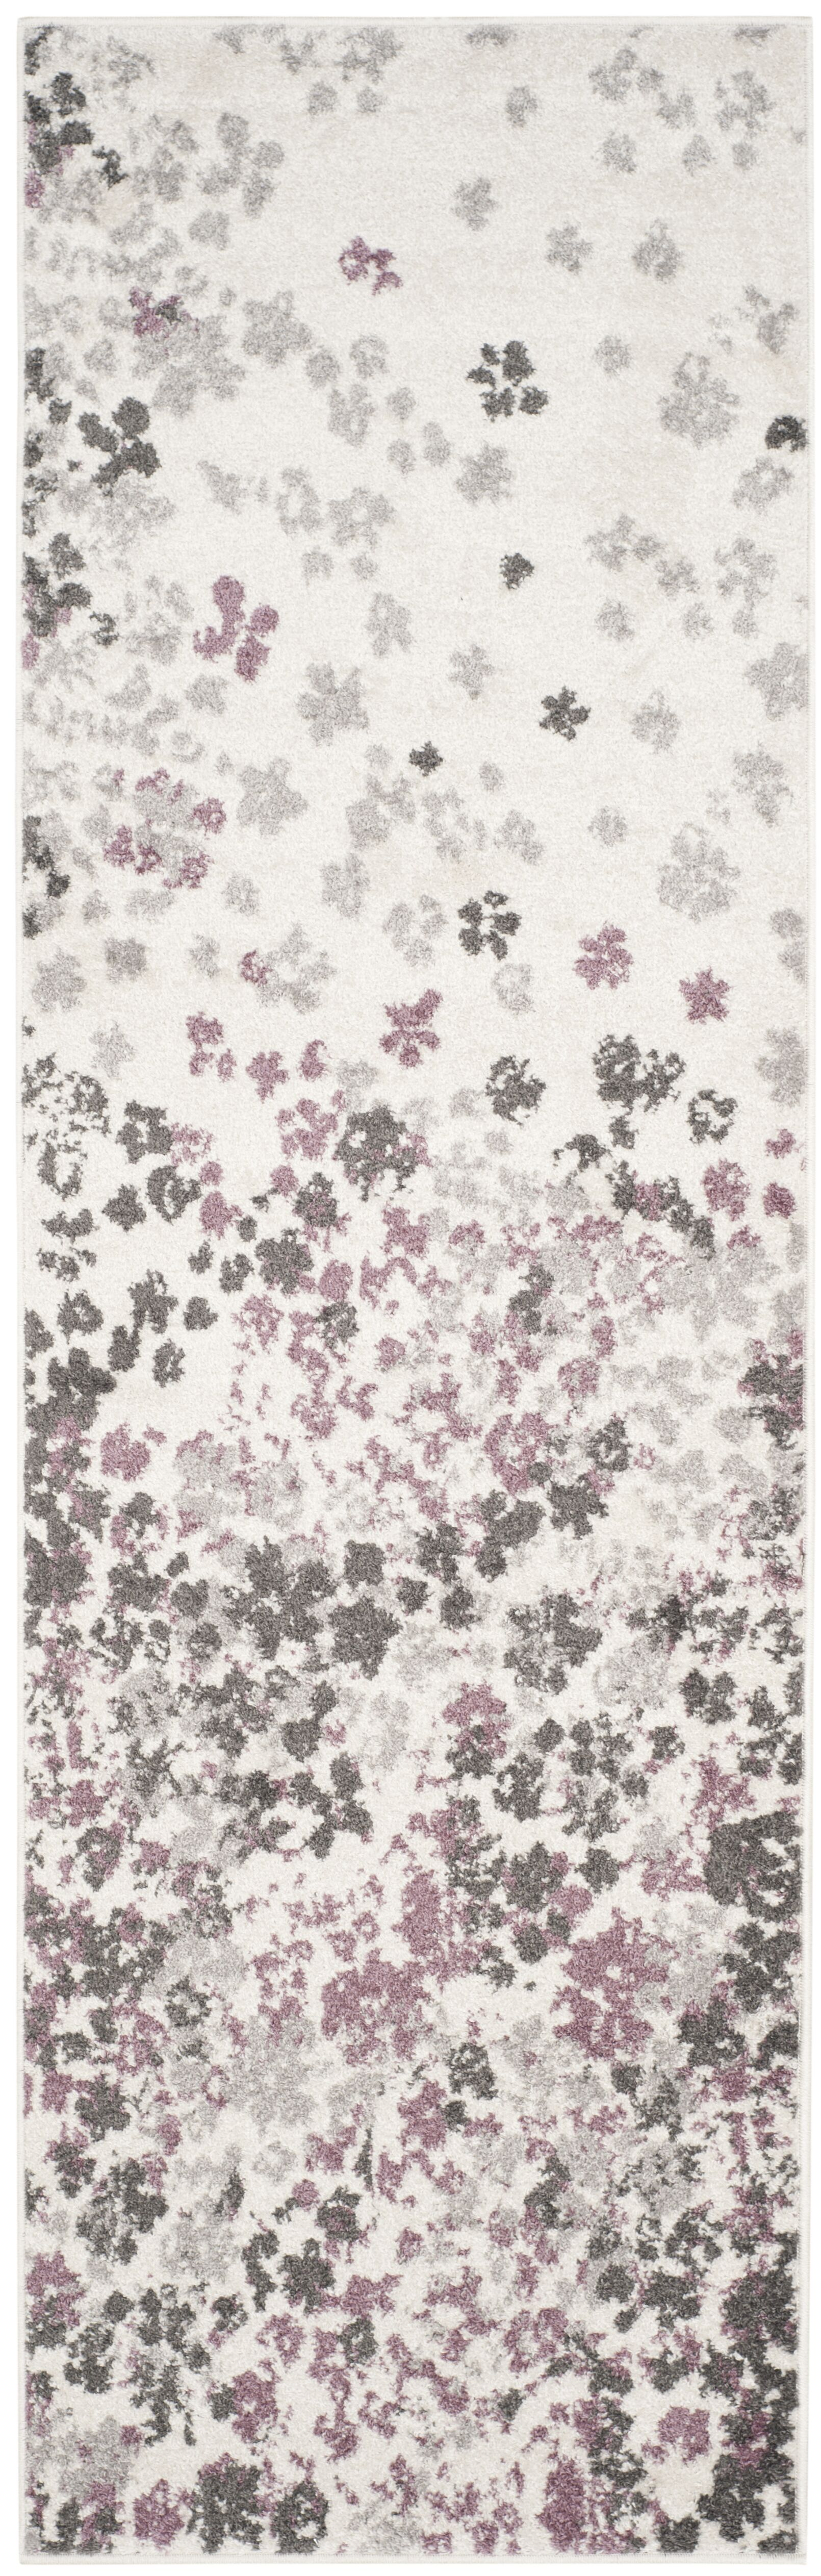 Ales Ivory/Gray/Purple Area Rug Rug Size: Runner 2'6